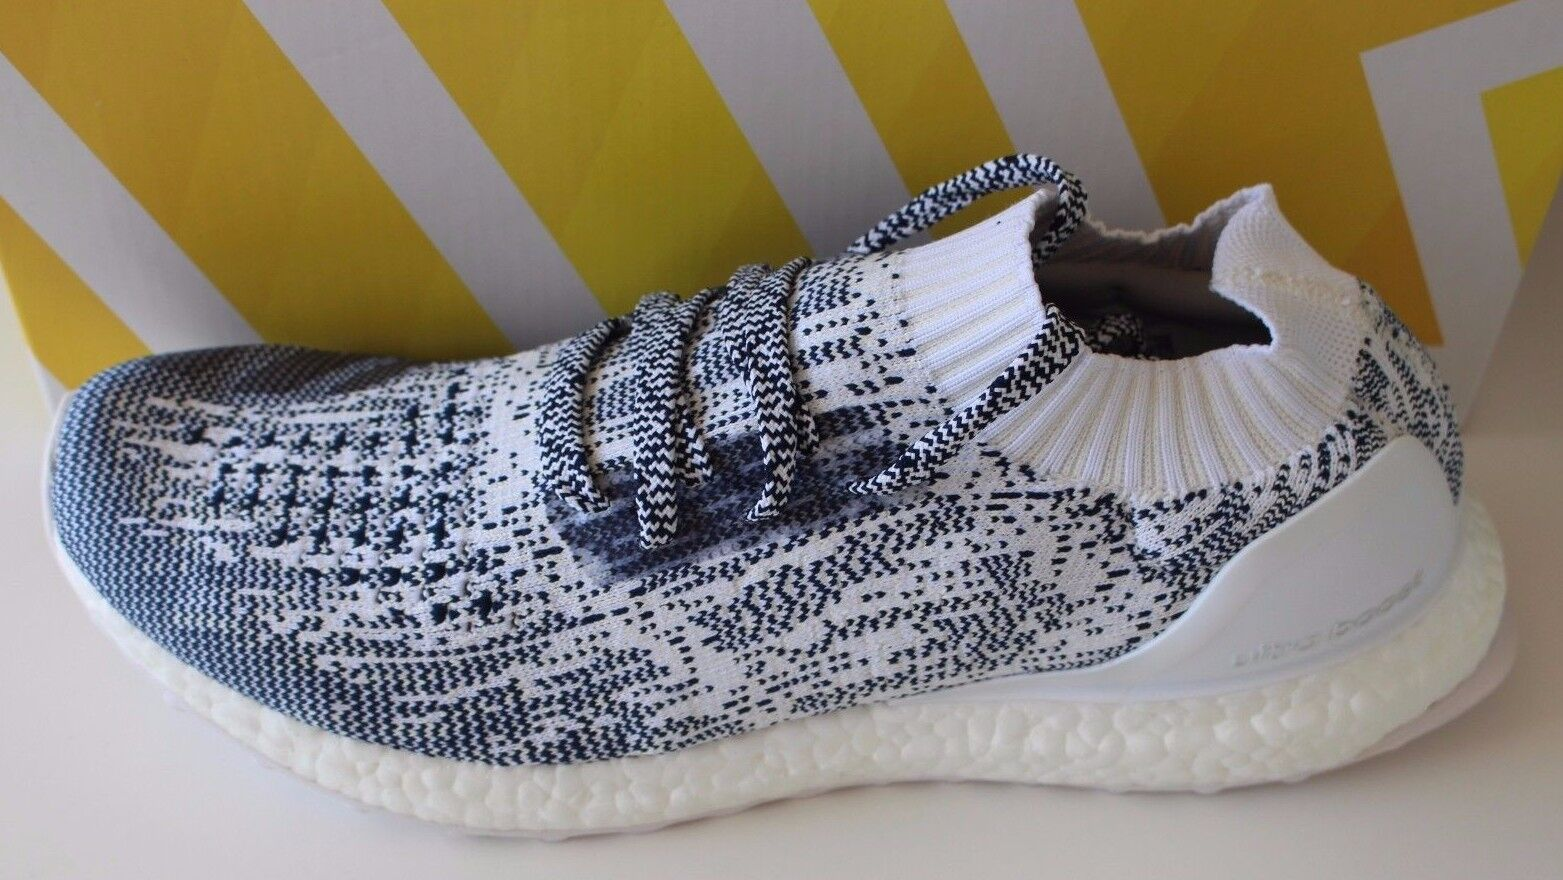 Adidas Ultra Boost Uncaged White Oreo Zebra Running Sneakers Trainers Comfortable